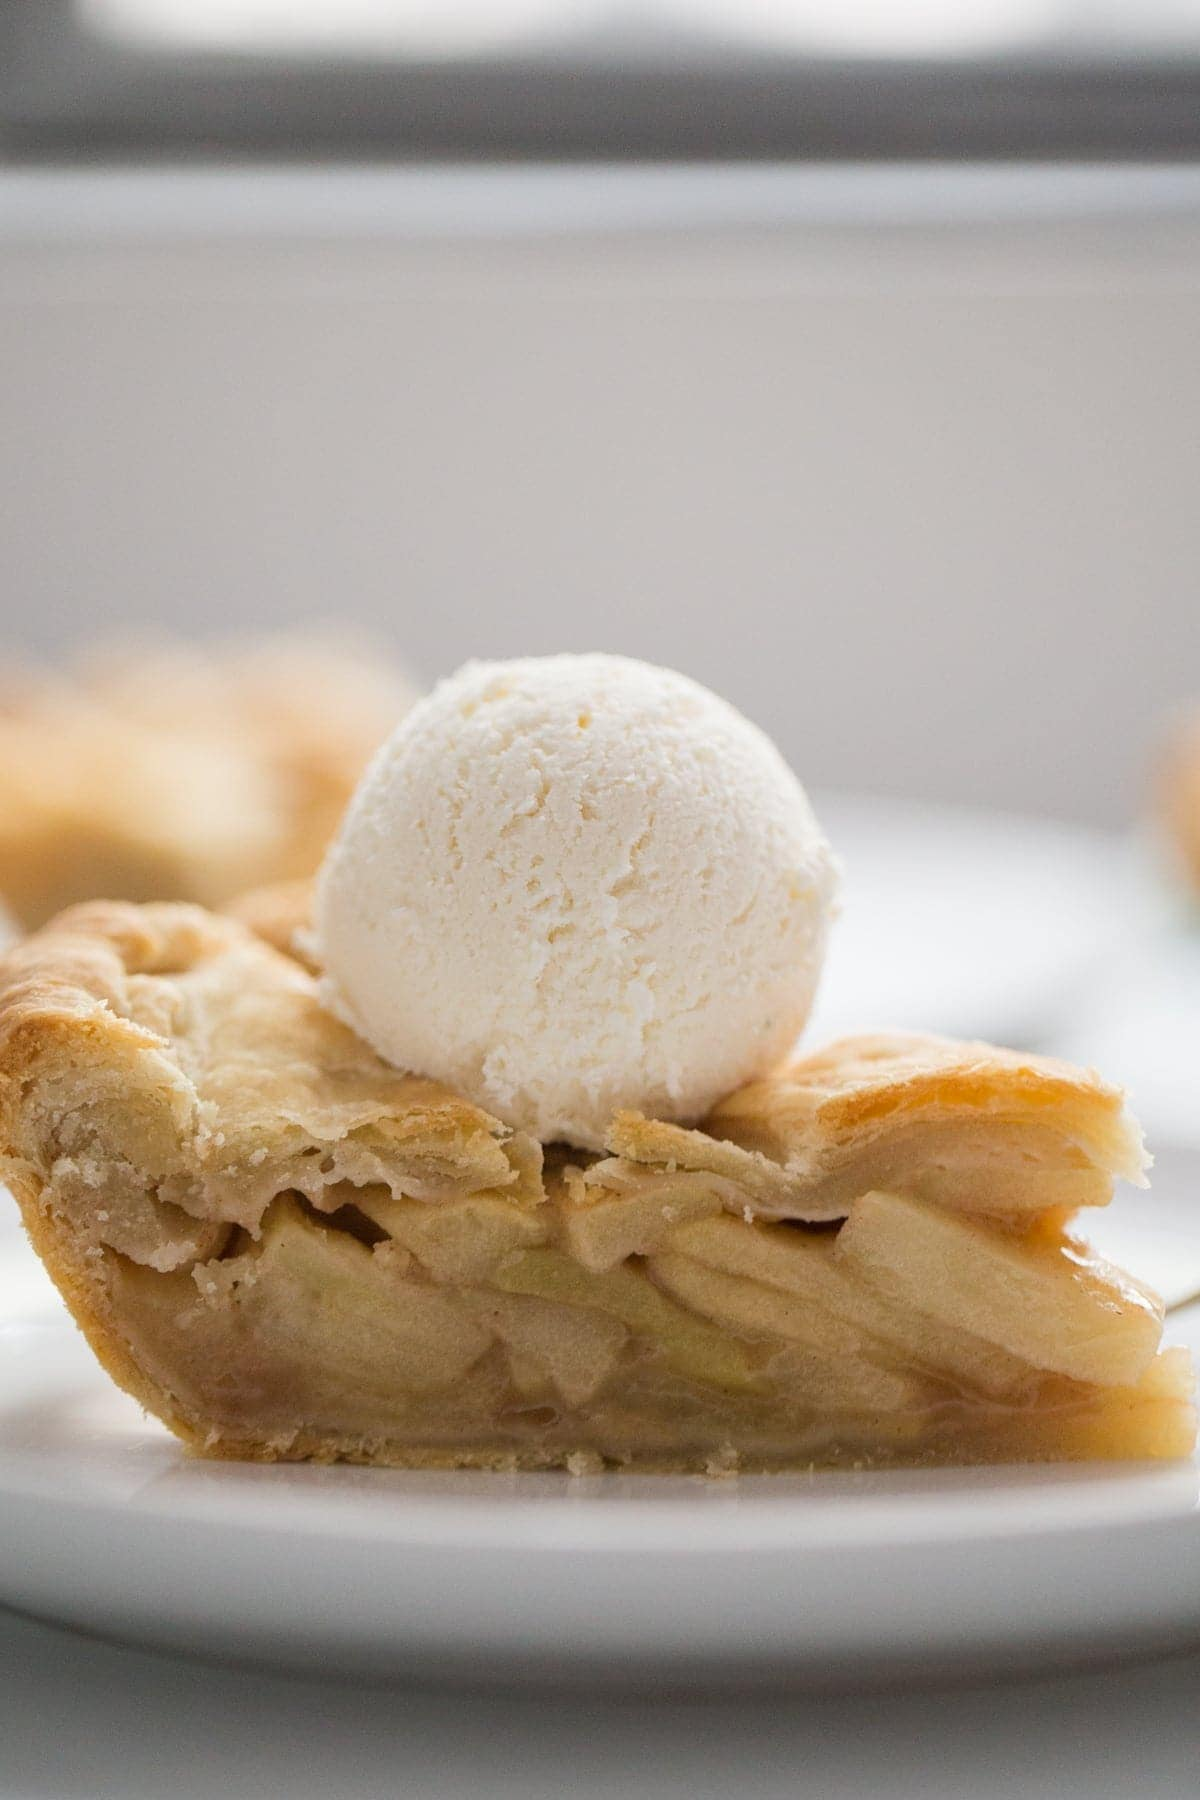 A slice of apple pie topped with vanilla ice cream